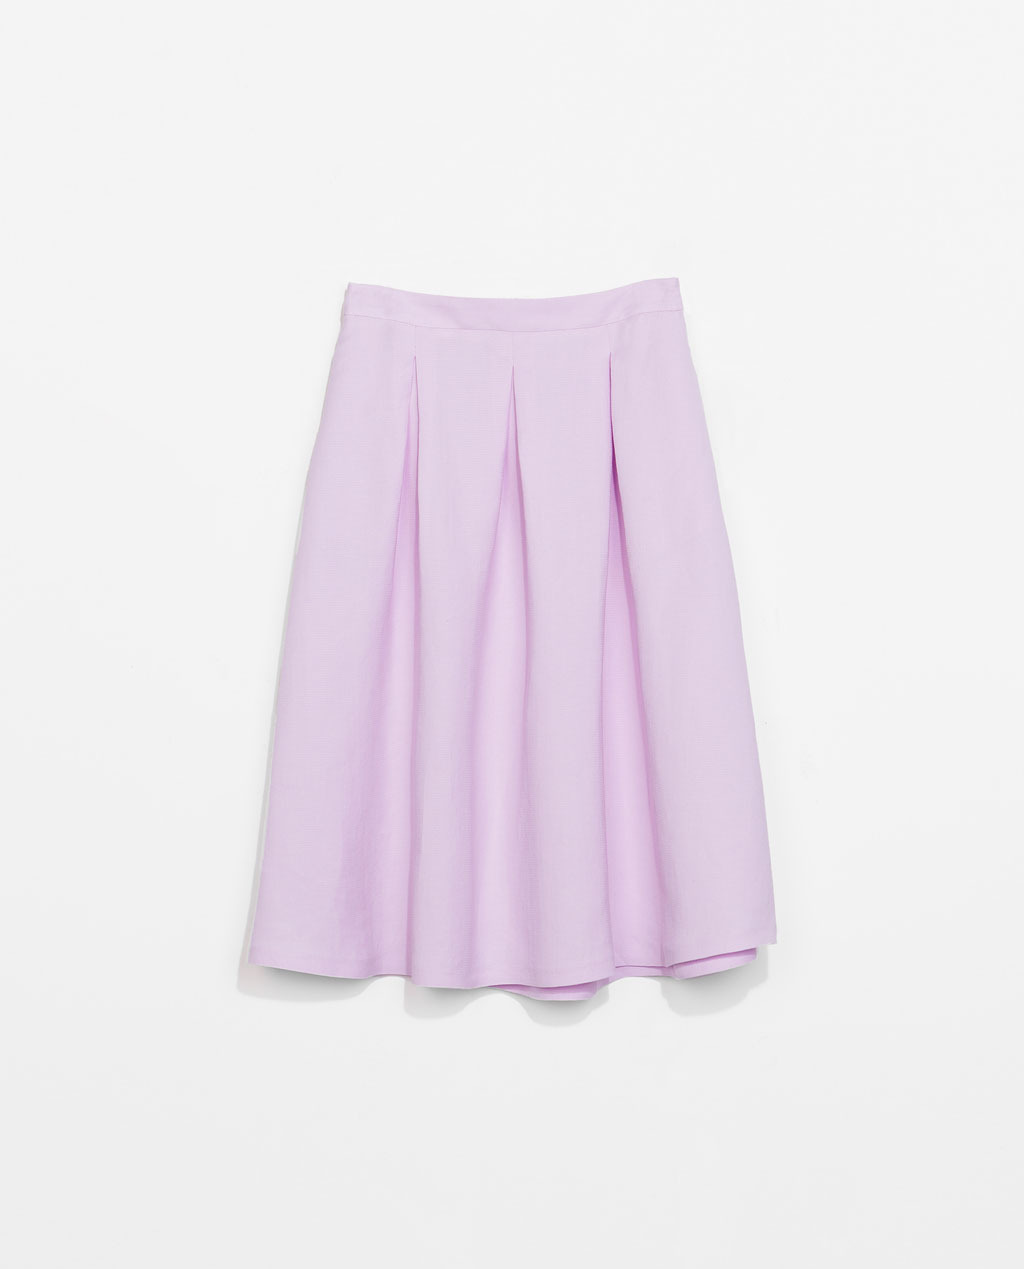 Maxi Volume Skirt - pattern: plain; fit: loose/voluminous; style: pleated; waist: high rise; predominant colour: lilac; occasions: casual, evening, occasion, creative work; length: on the knee; fibres: linen - mix; hip detail: structured pleats at hip; pattern type: fabric; texture group: woven light midweight; trends: sorbet shades; season: s/s 2014